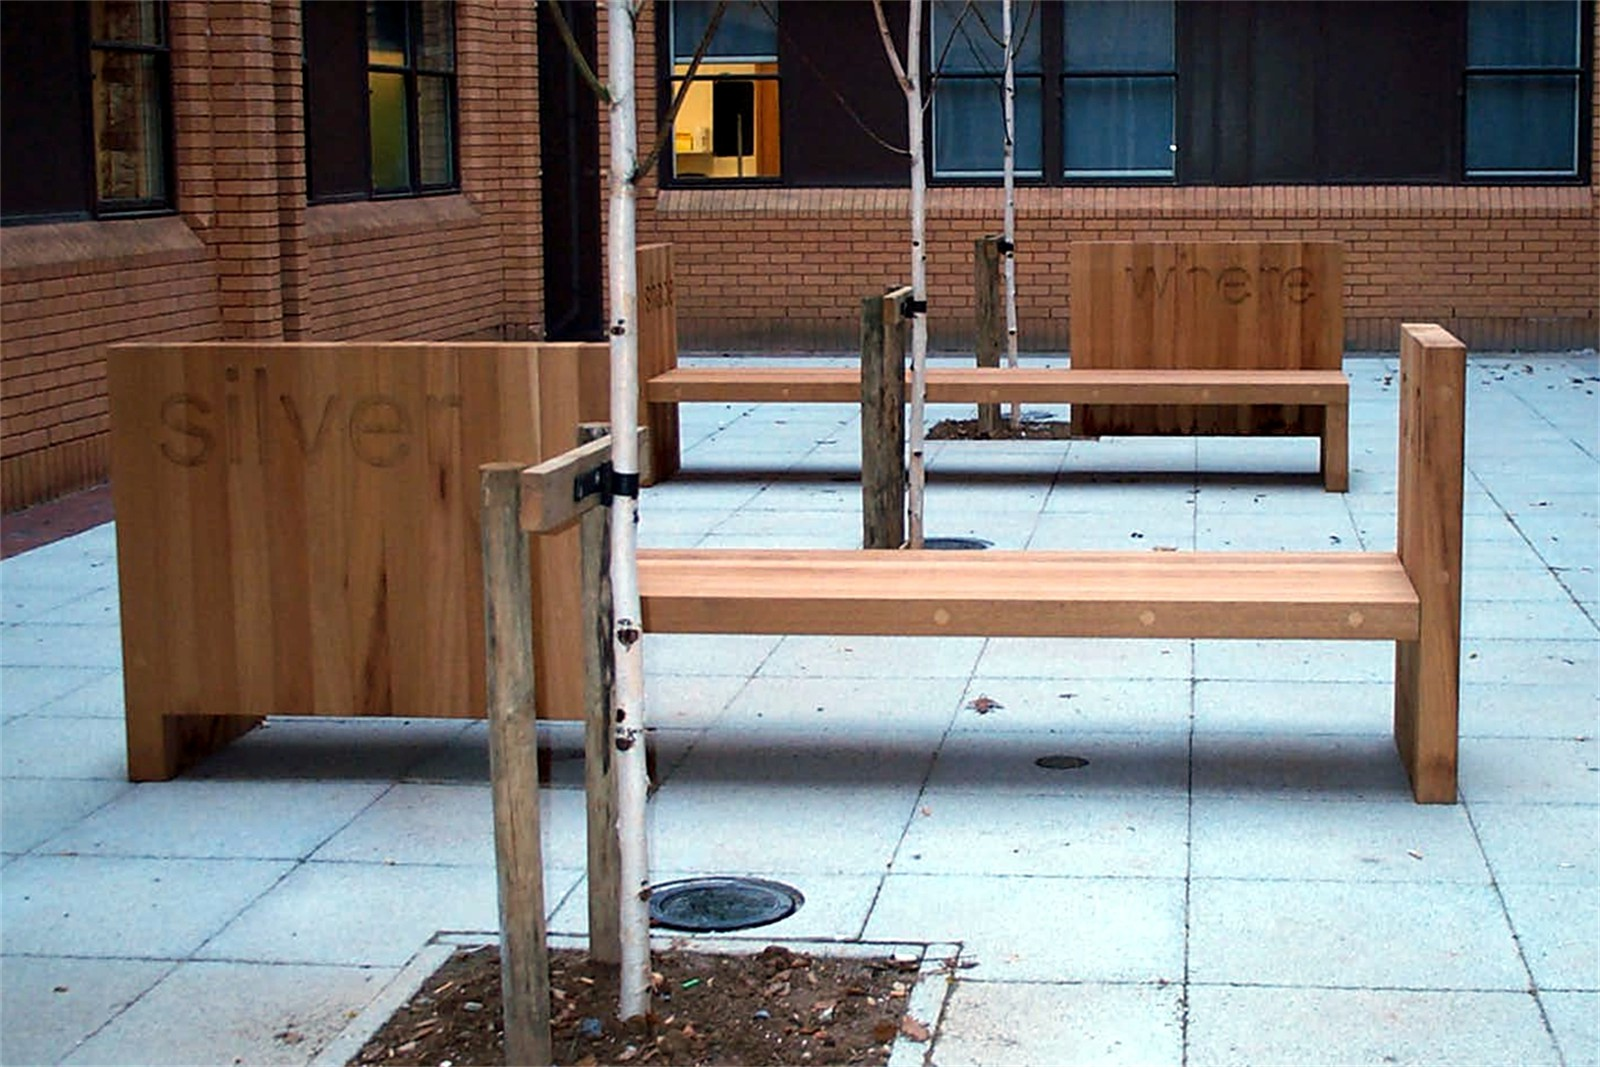 c12306 - Musgrove Park Hospital, bespoke seating and planter